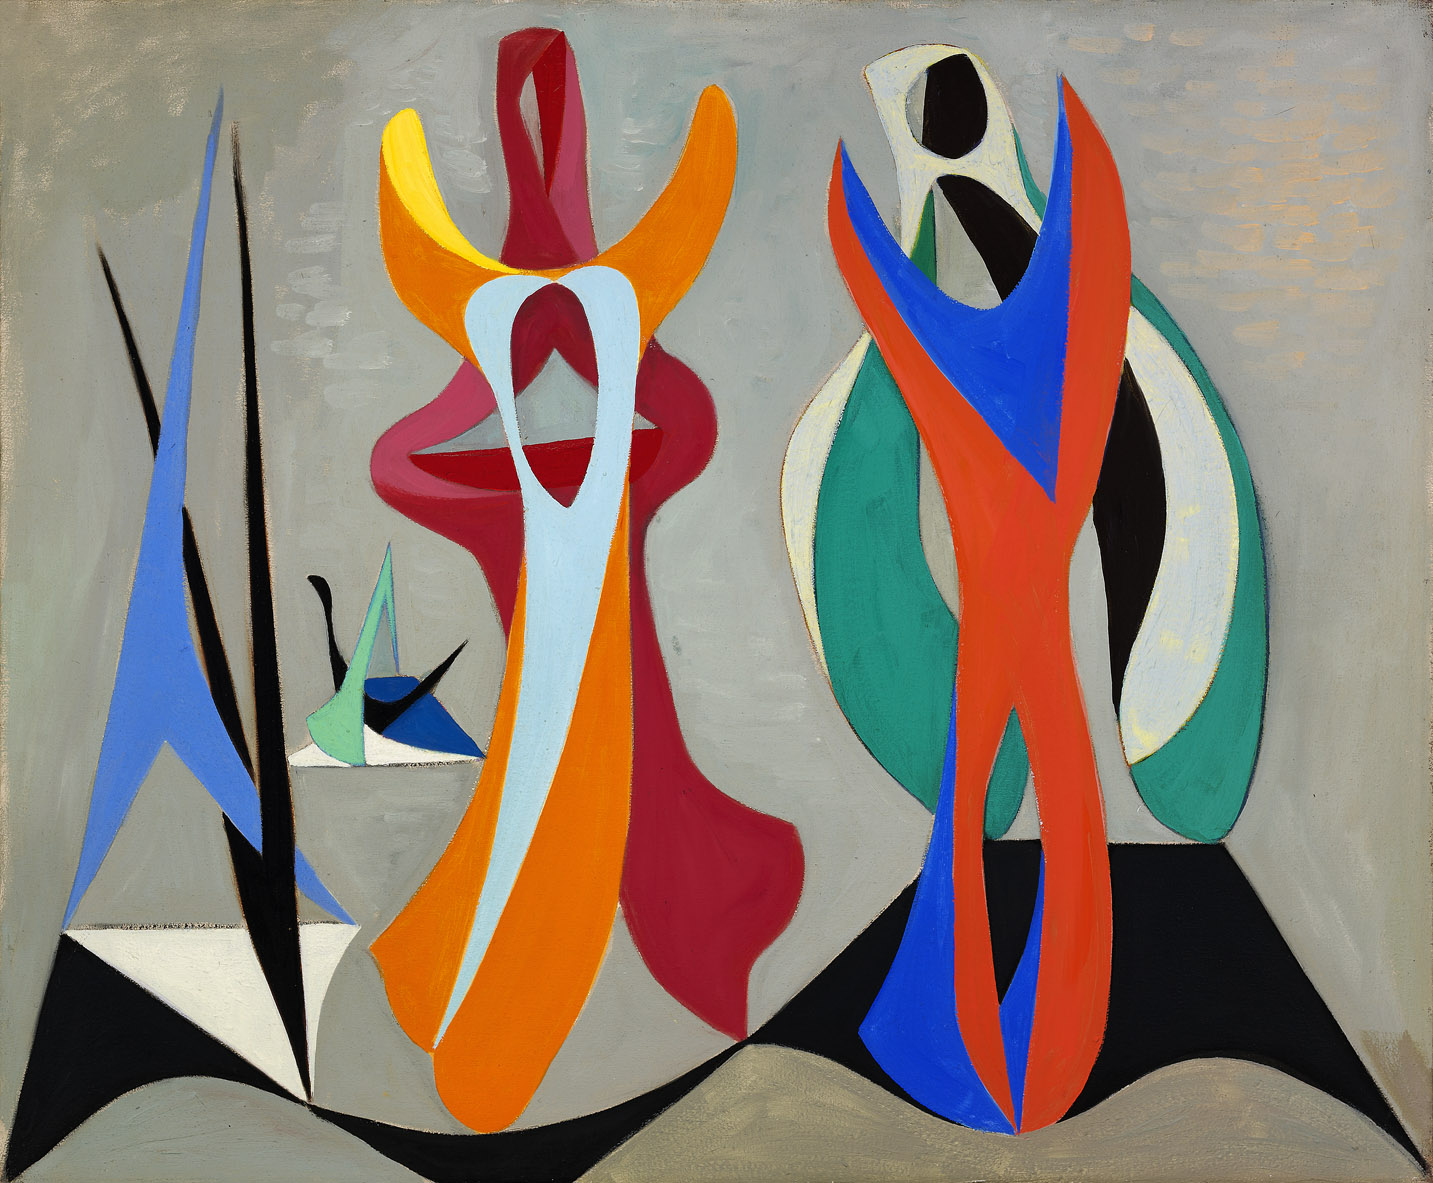 Magical Forms , 1945  oil on canvas 31 x 37 x 2 inches; 78.7 x 94 x 5.1 centimeters